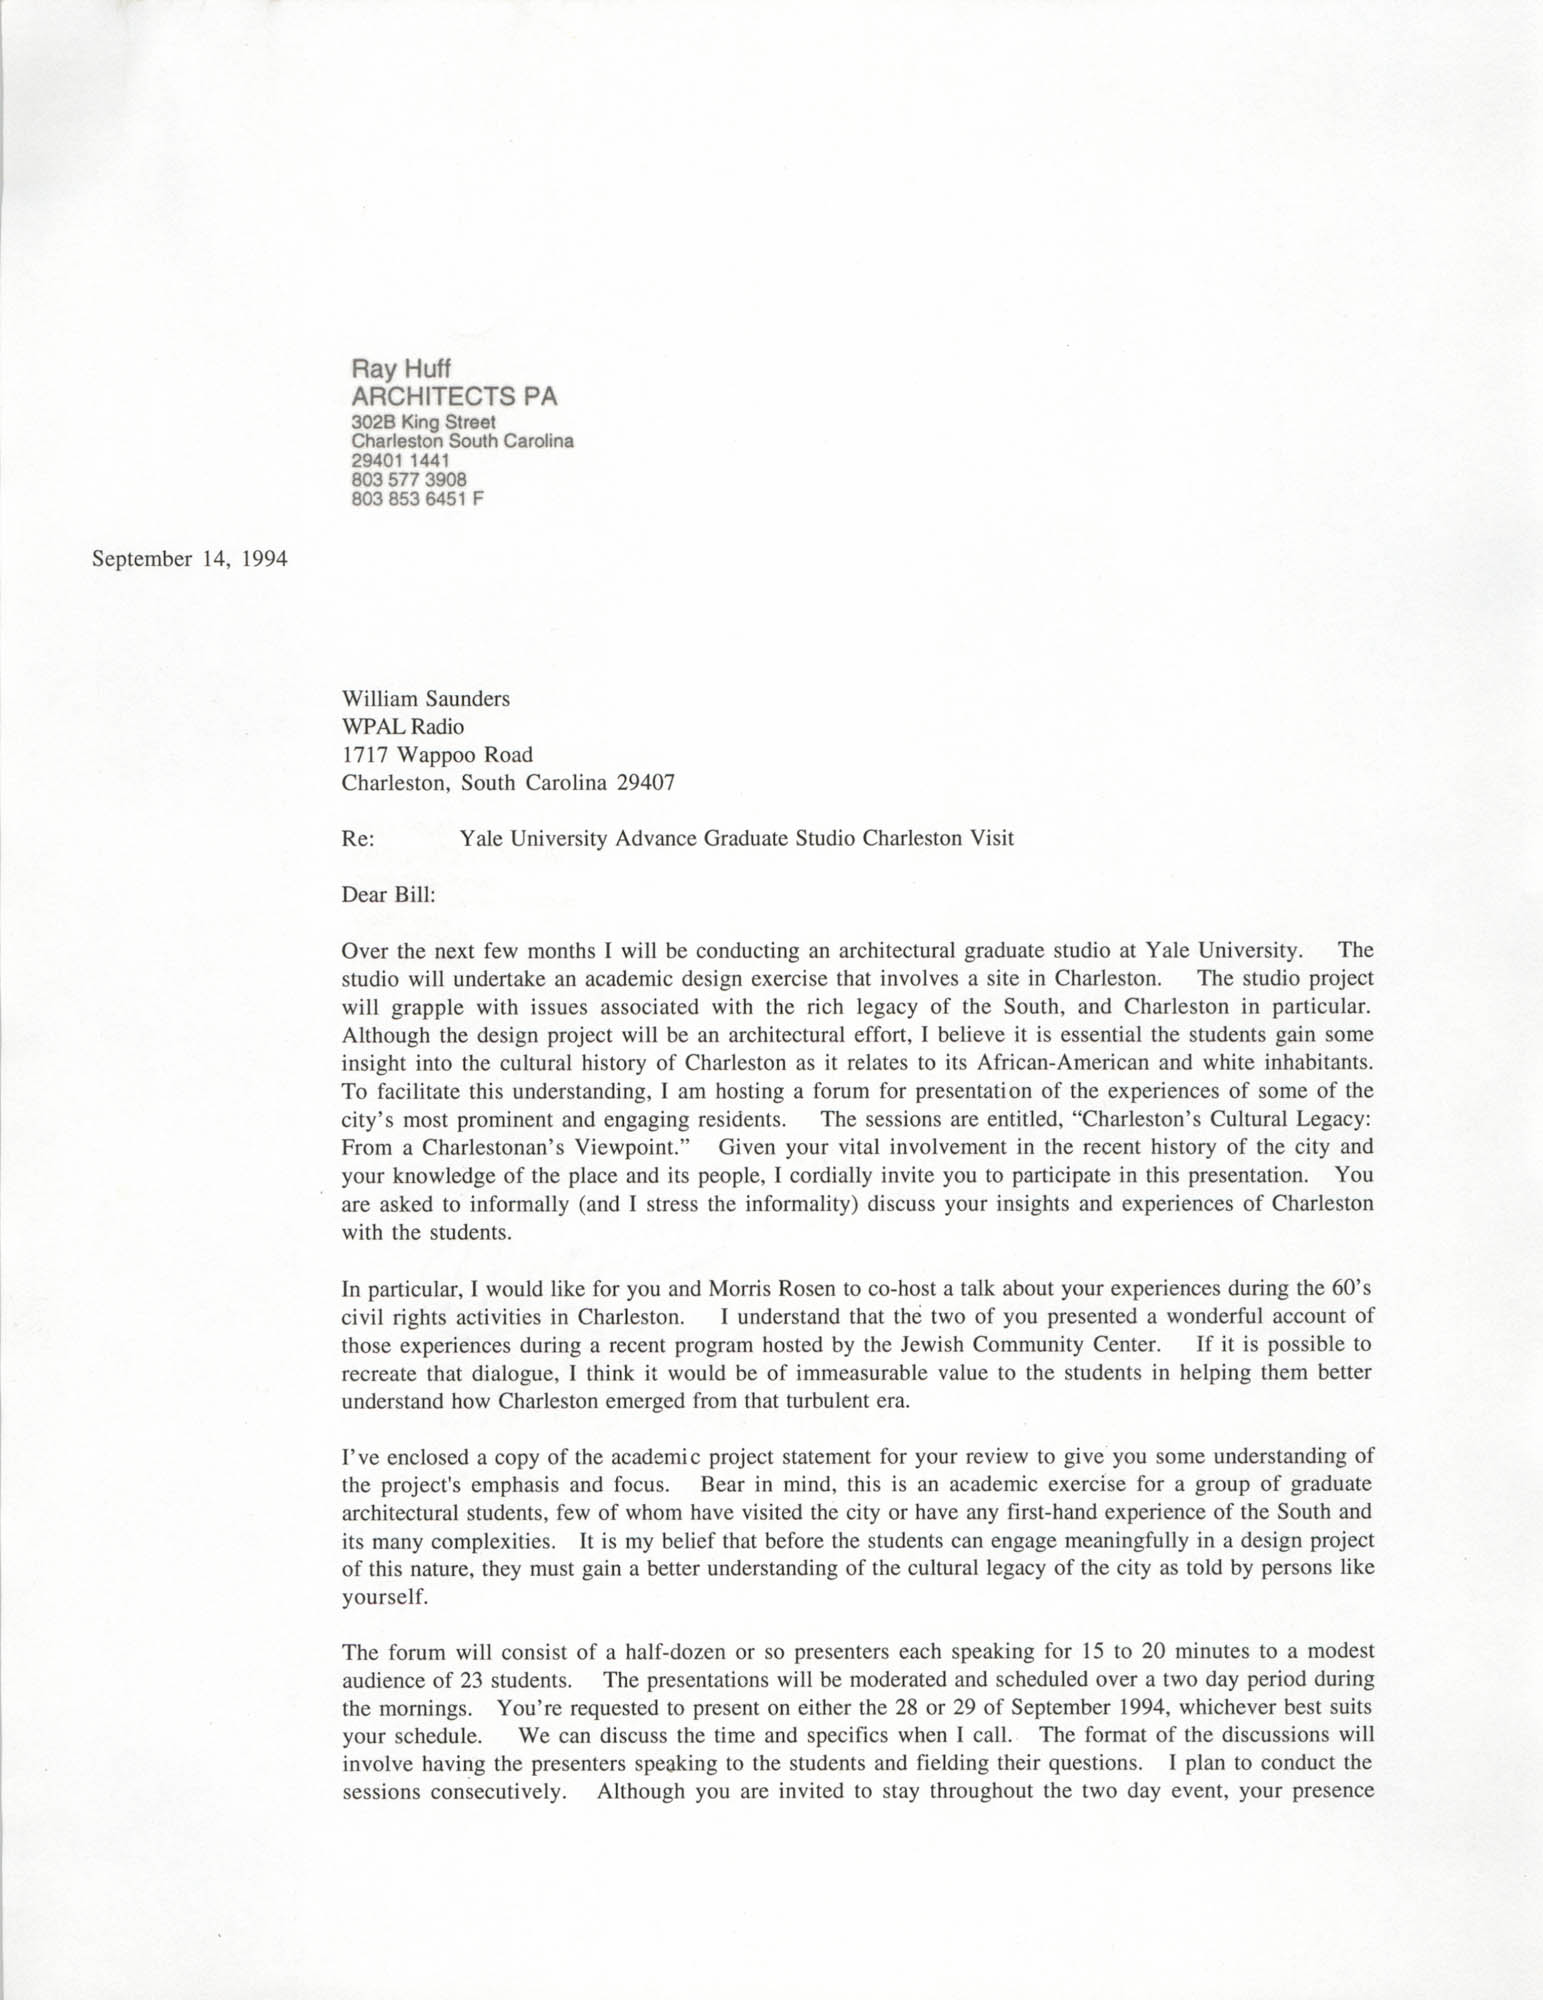 Letter from Ray Huff to William Saunders, September 14, 1994, Page 1